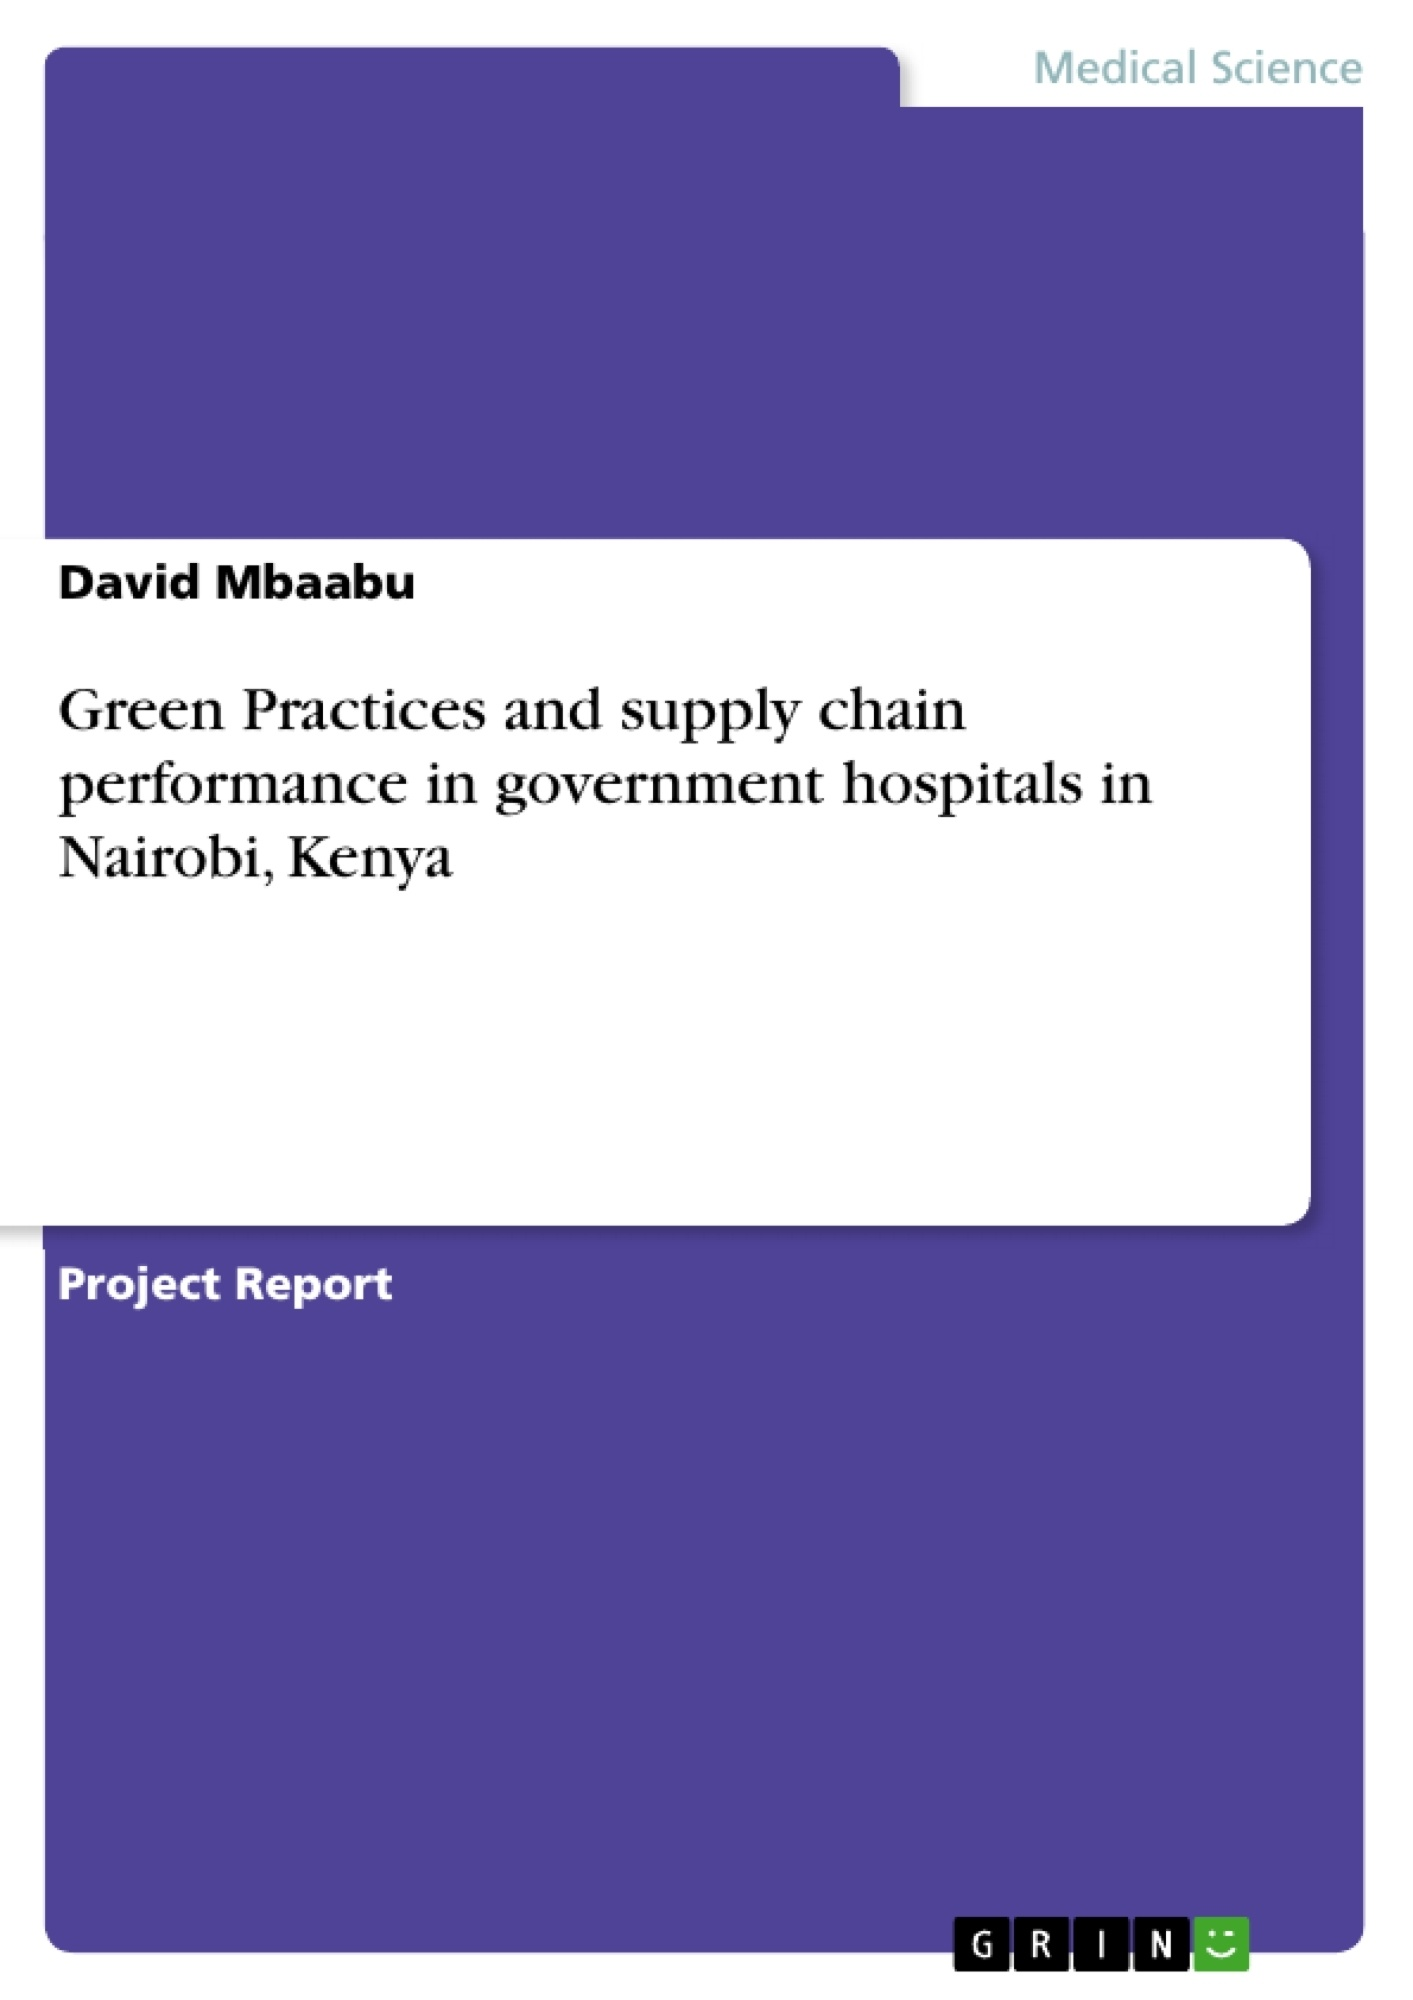 Title: Green Practices and supply chain performance in government hospitals in Nairobi, Kenya